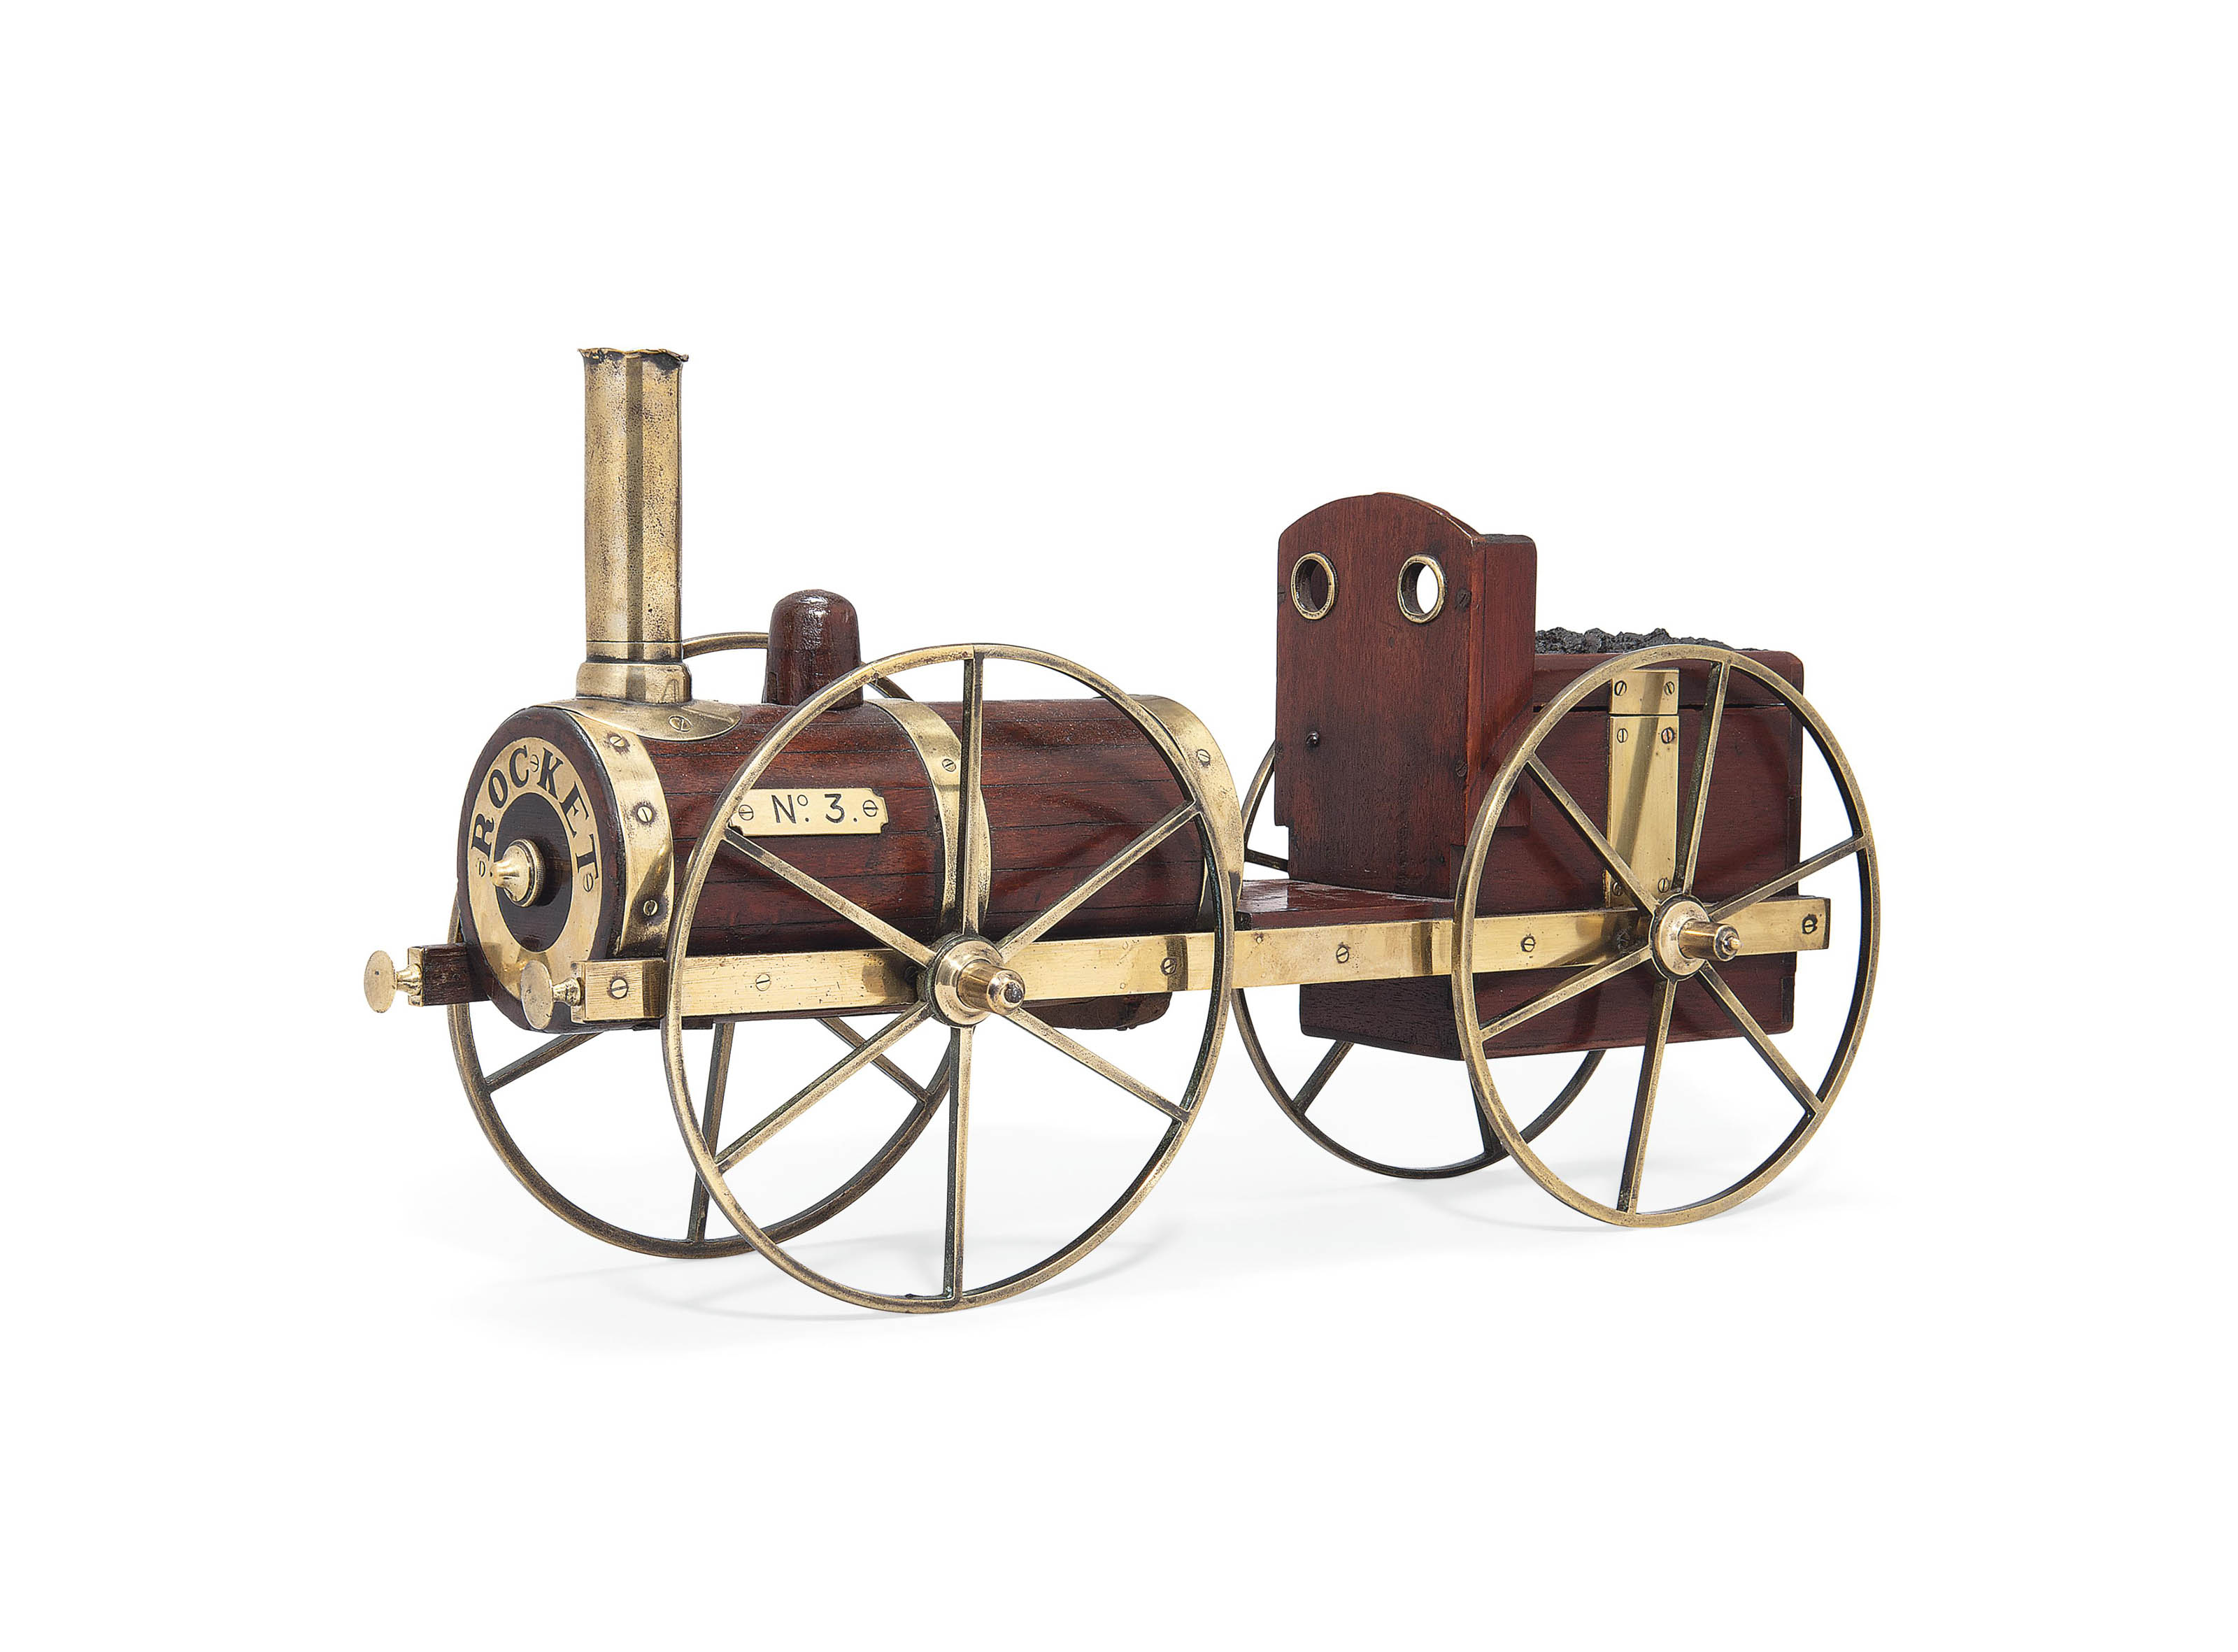 AN ENGLISH MAHOGANY AND BRASS NOVELTY TOBACCO BOX IN THE FORM OF STEPHENSON'S ROCKET